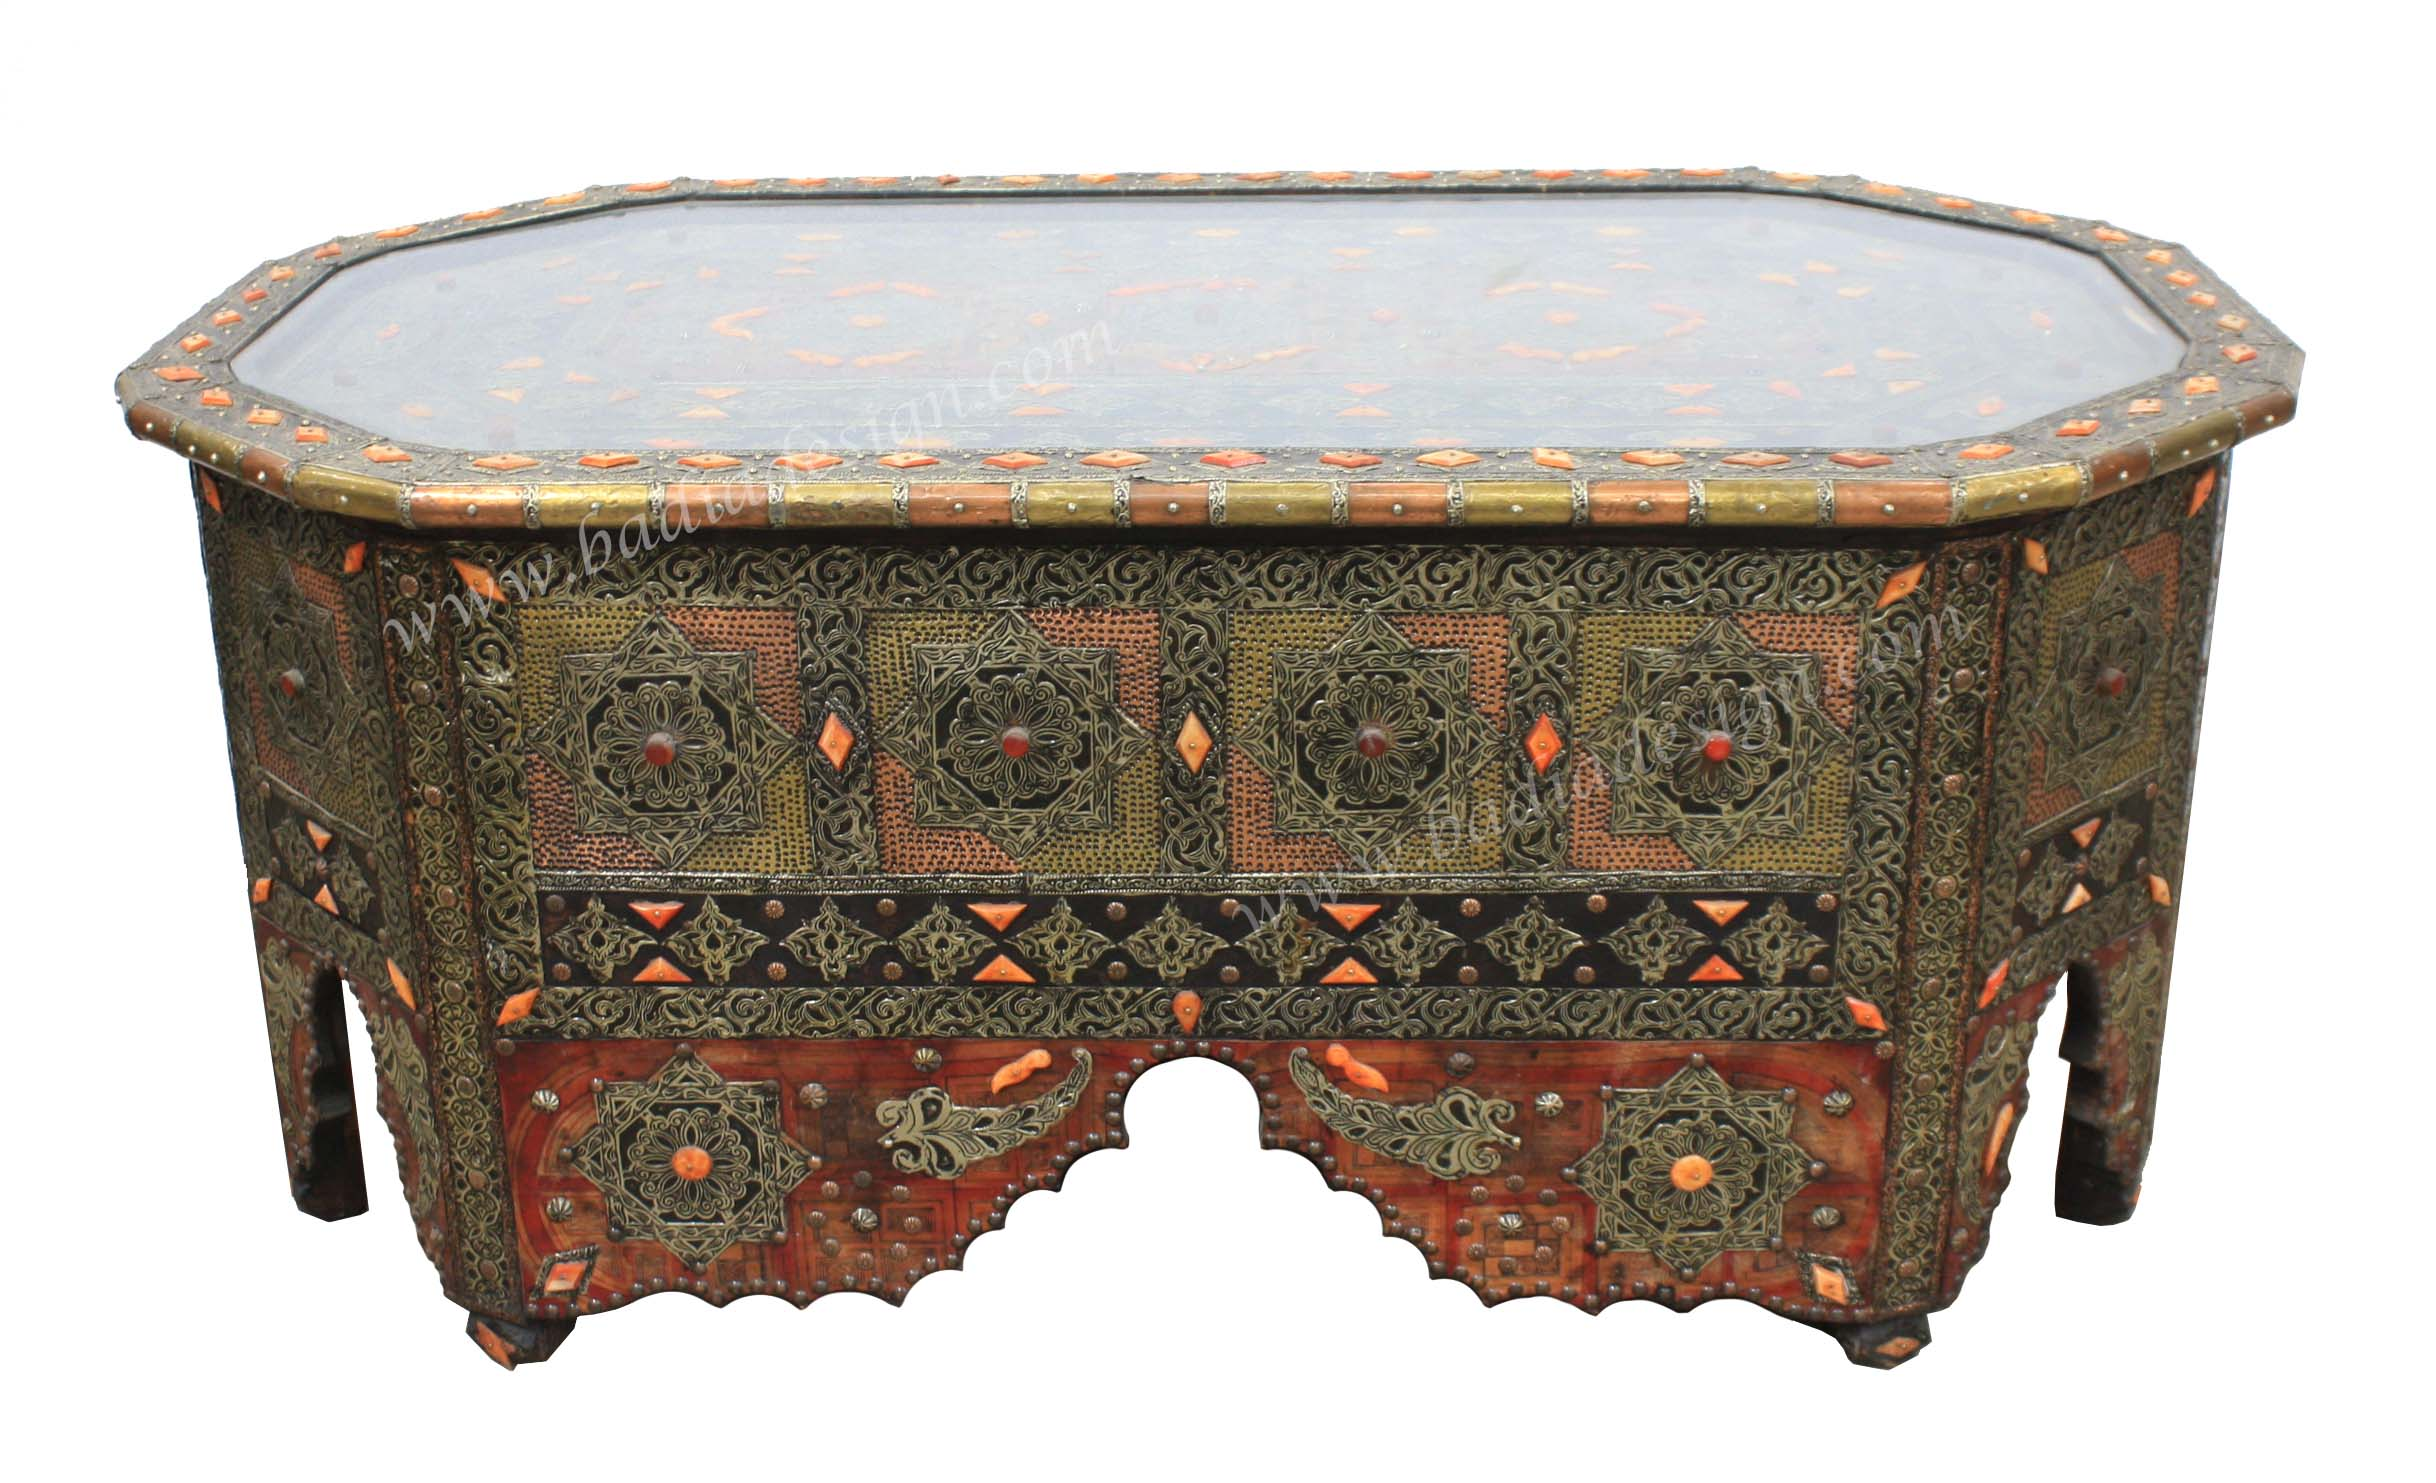 moroccan-upscale-furniture-los-angeles-mb-st068-1.jpg